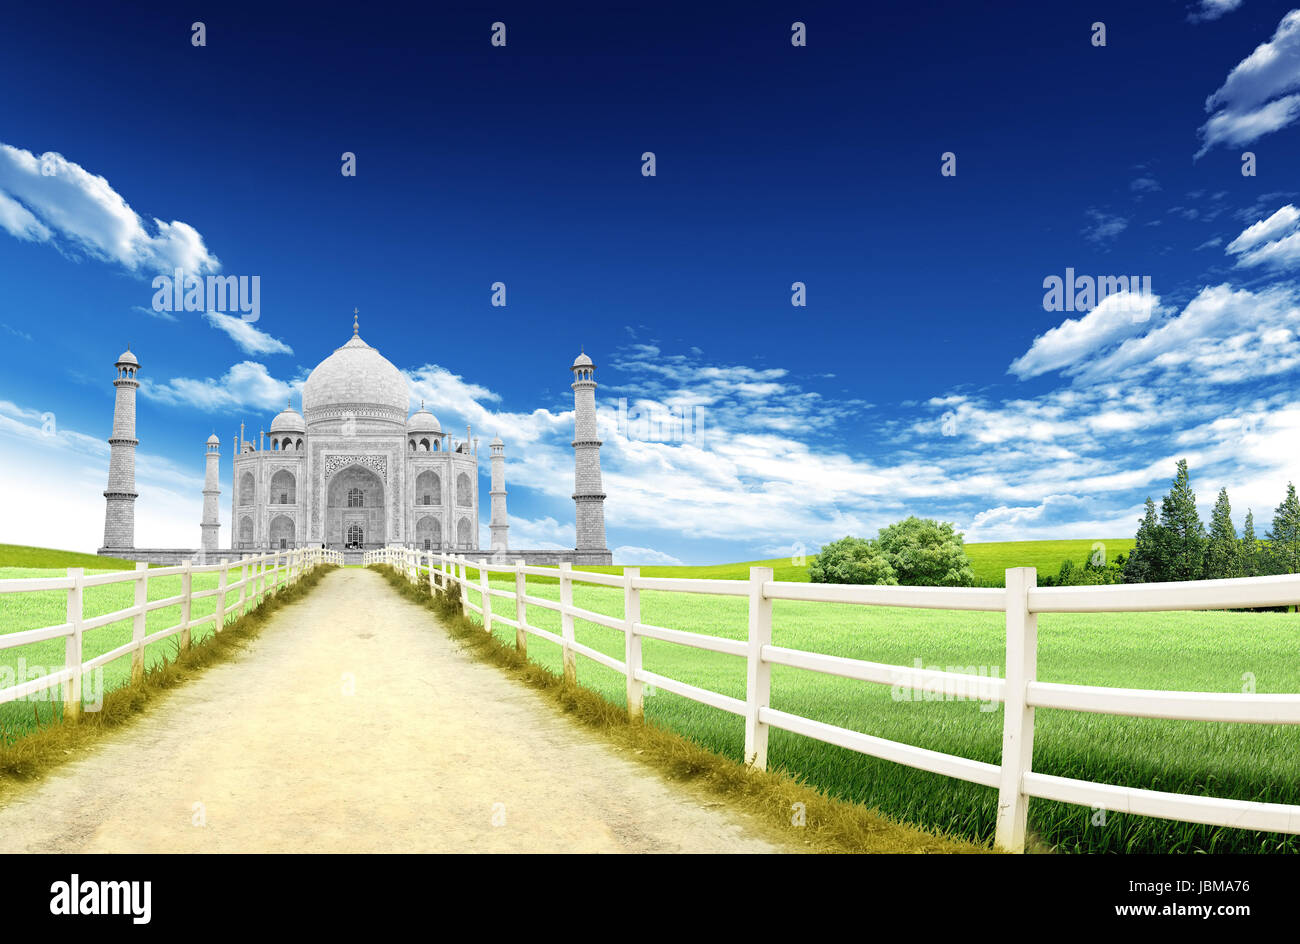 Landscape with country road and Taji Mahal, Agra landmark, India, in the background with blue sky and clouds - Stock Image